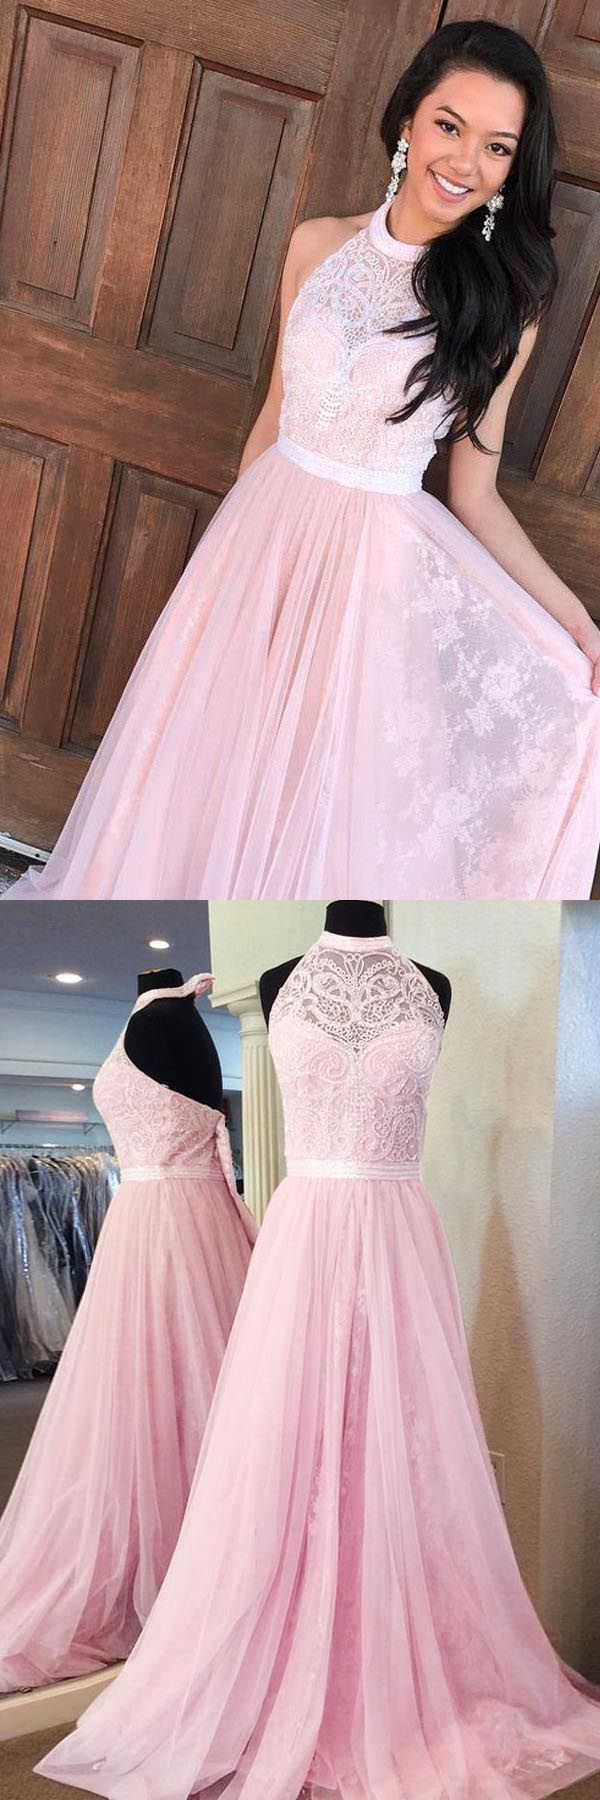 elegant halter prom party dresses, pink evening gowns with appliques ...